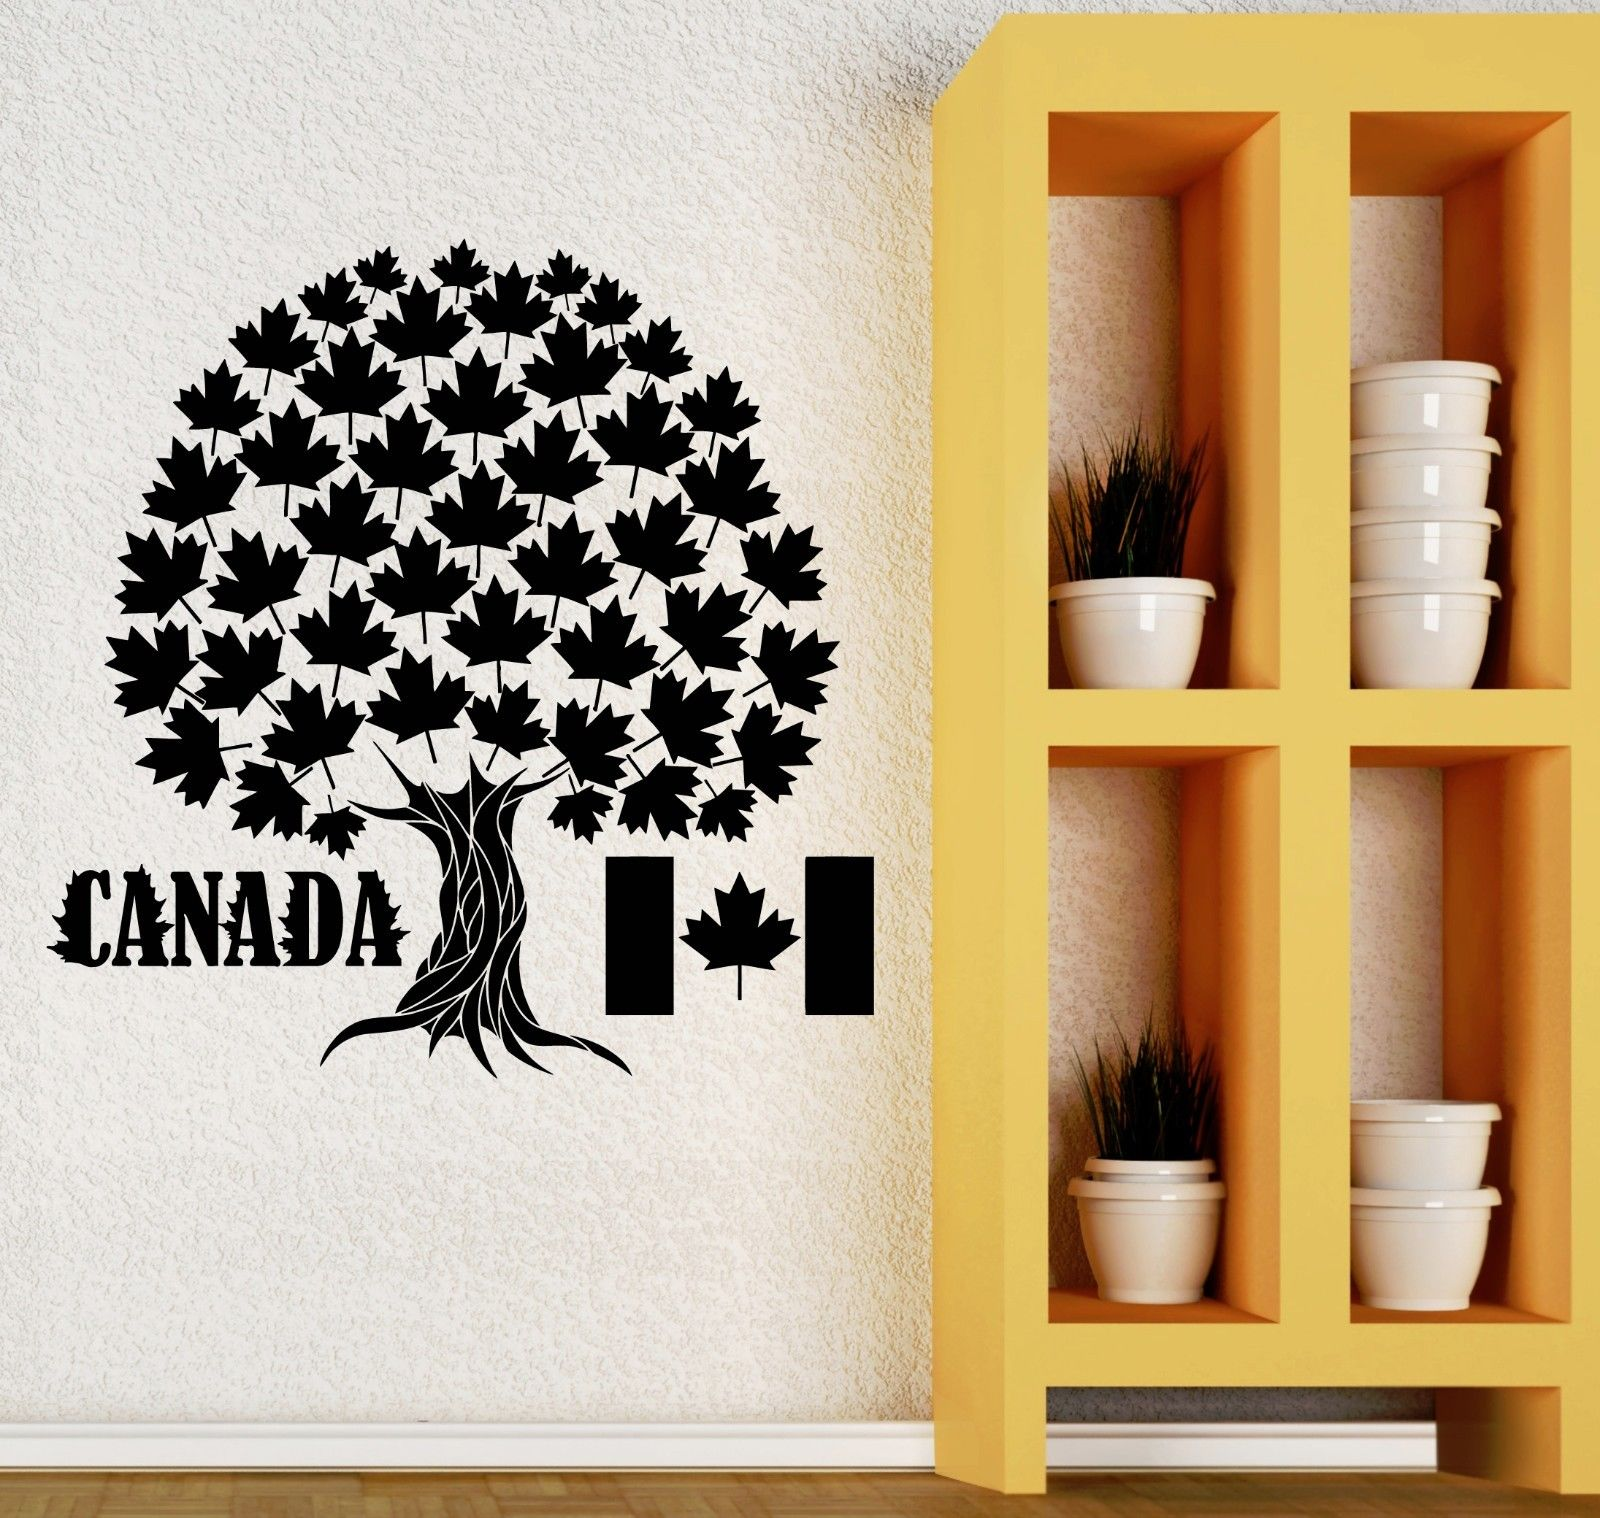 Online Buy Wholesale Wall Decals Canada From China Wall Decals Canada Wholesalers